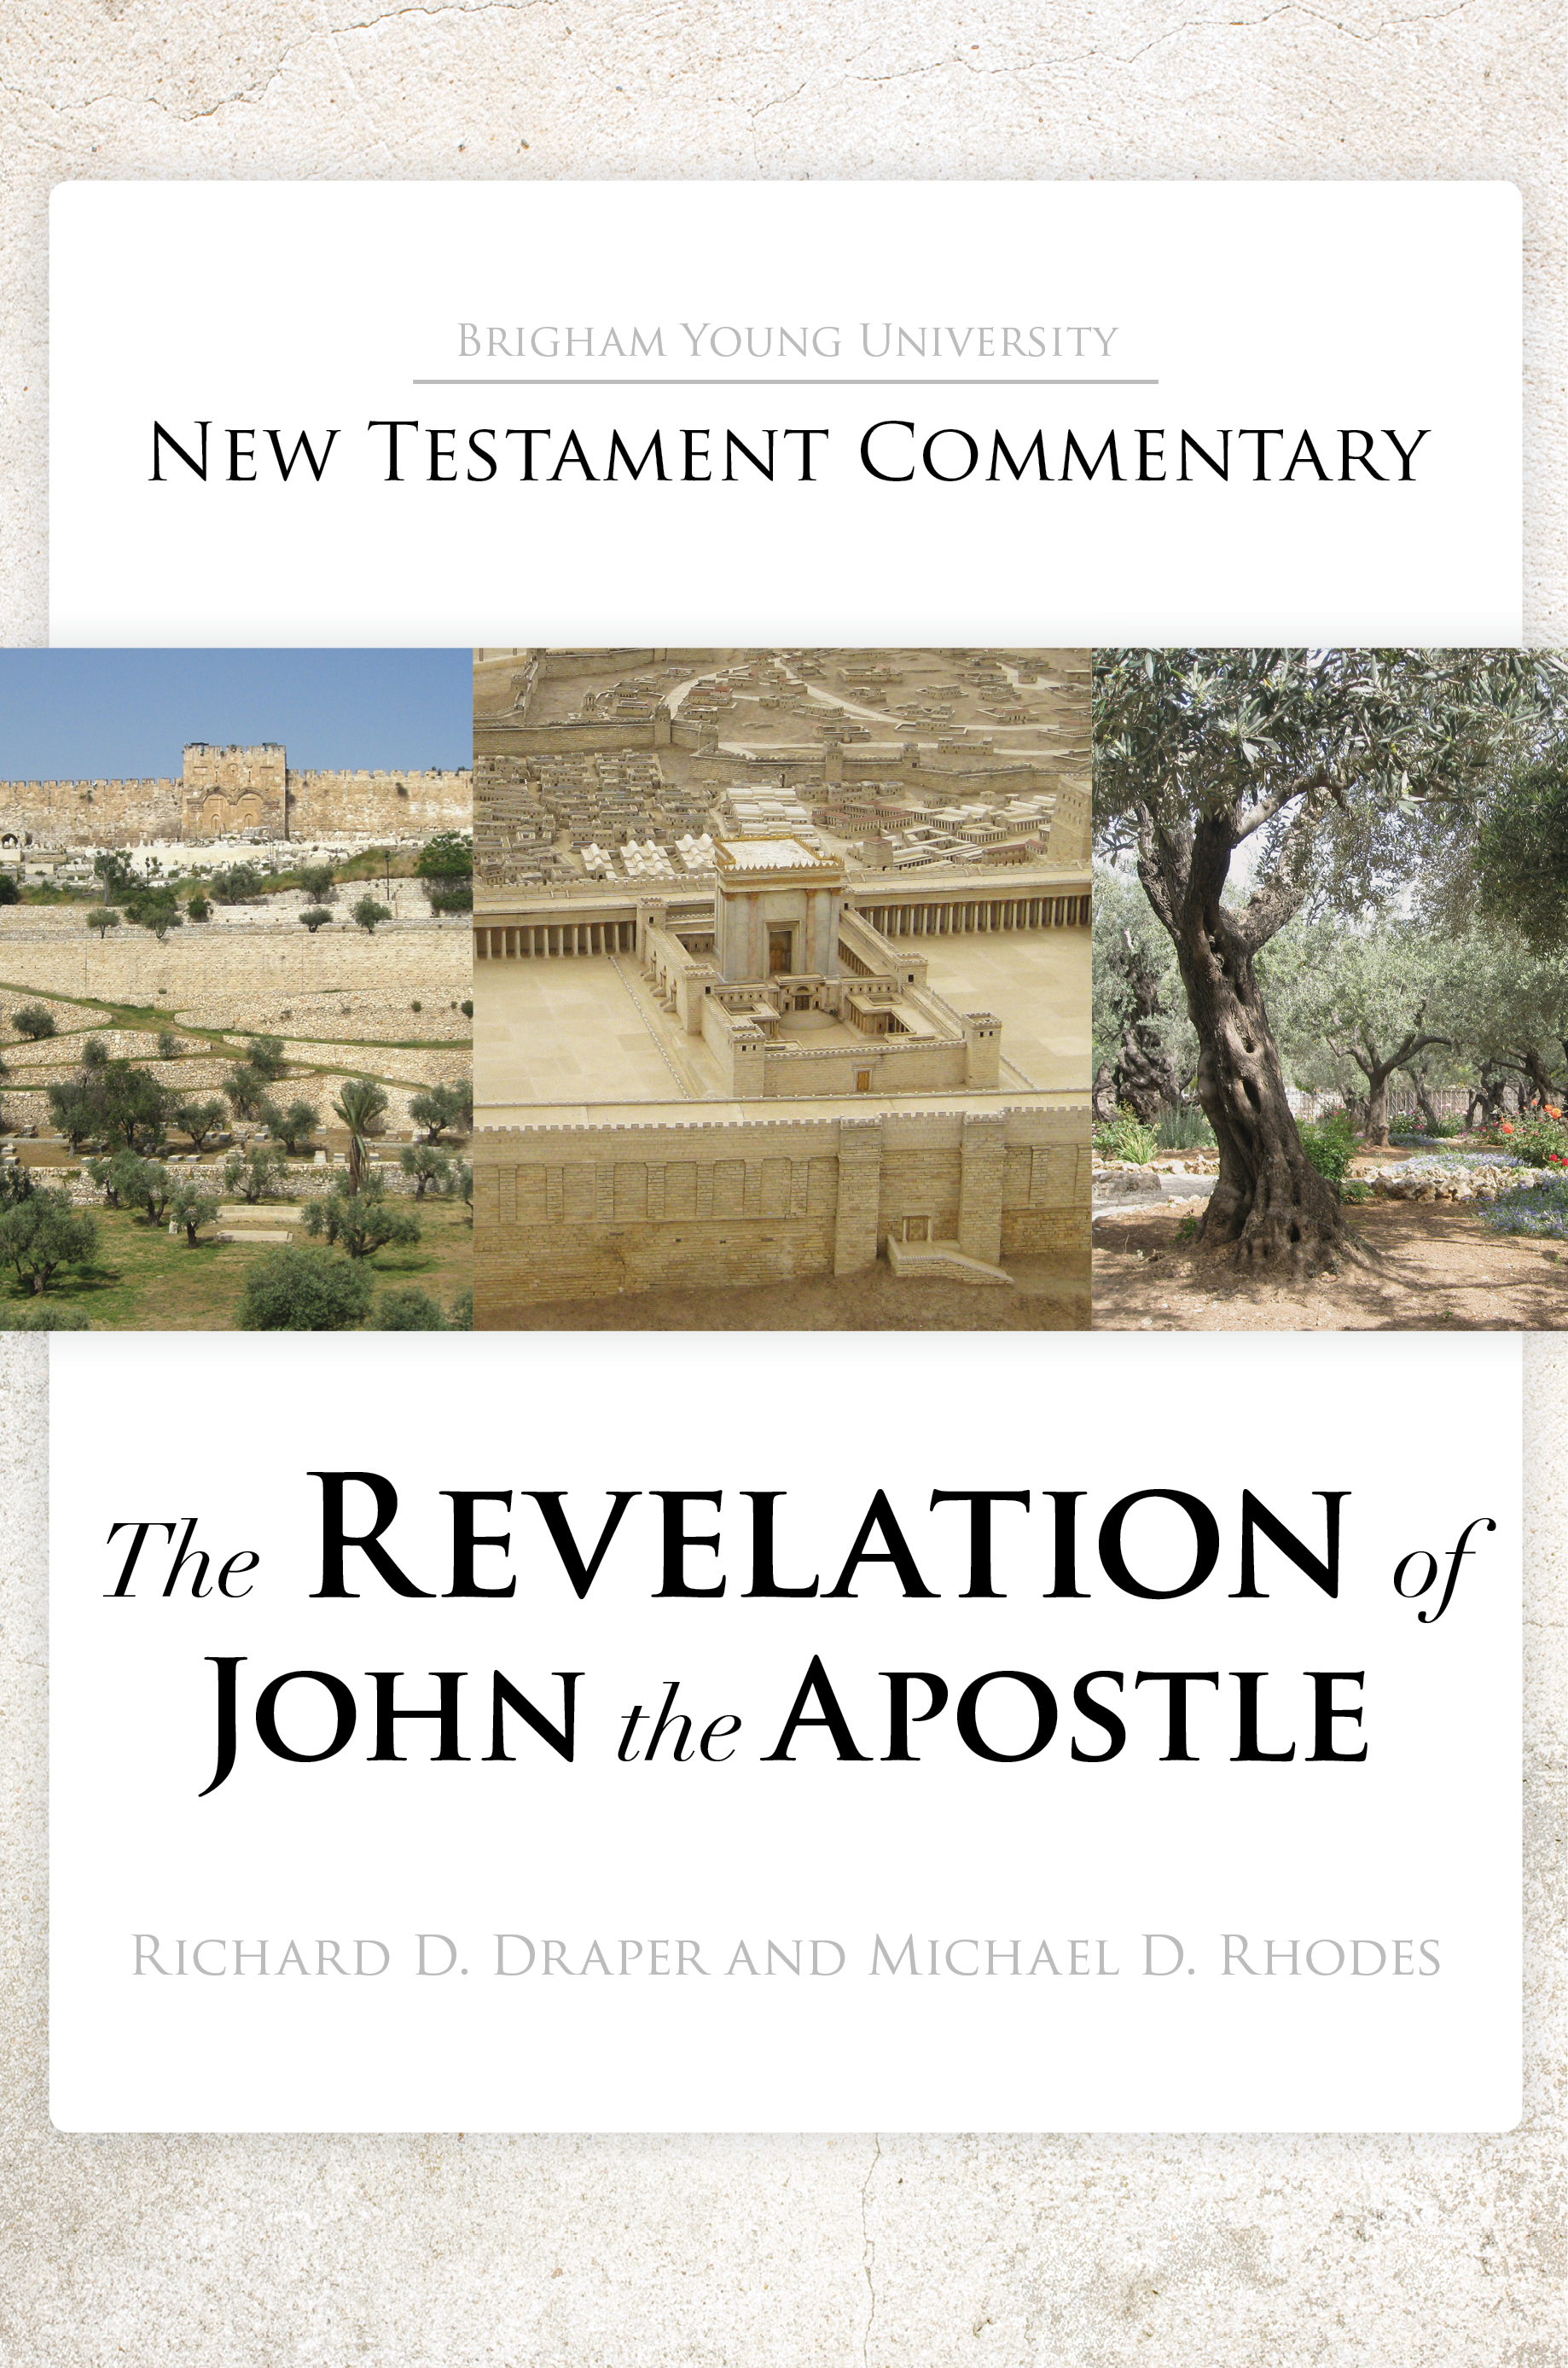 Byu new testament commentary review of the revelation of john the apostle fandeluxe Images